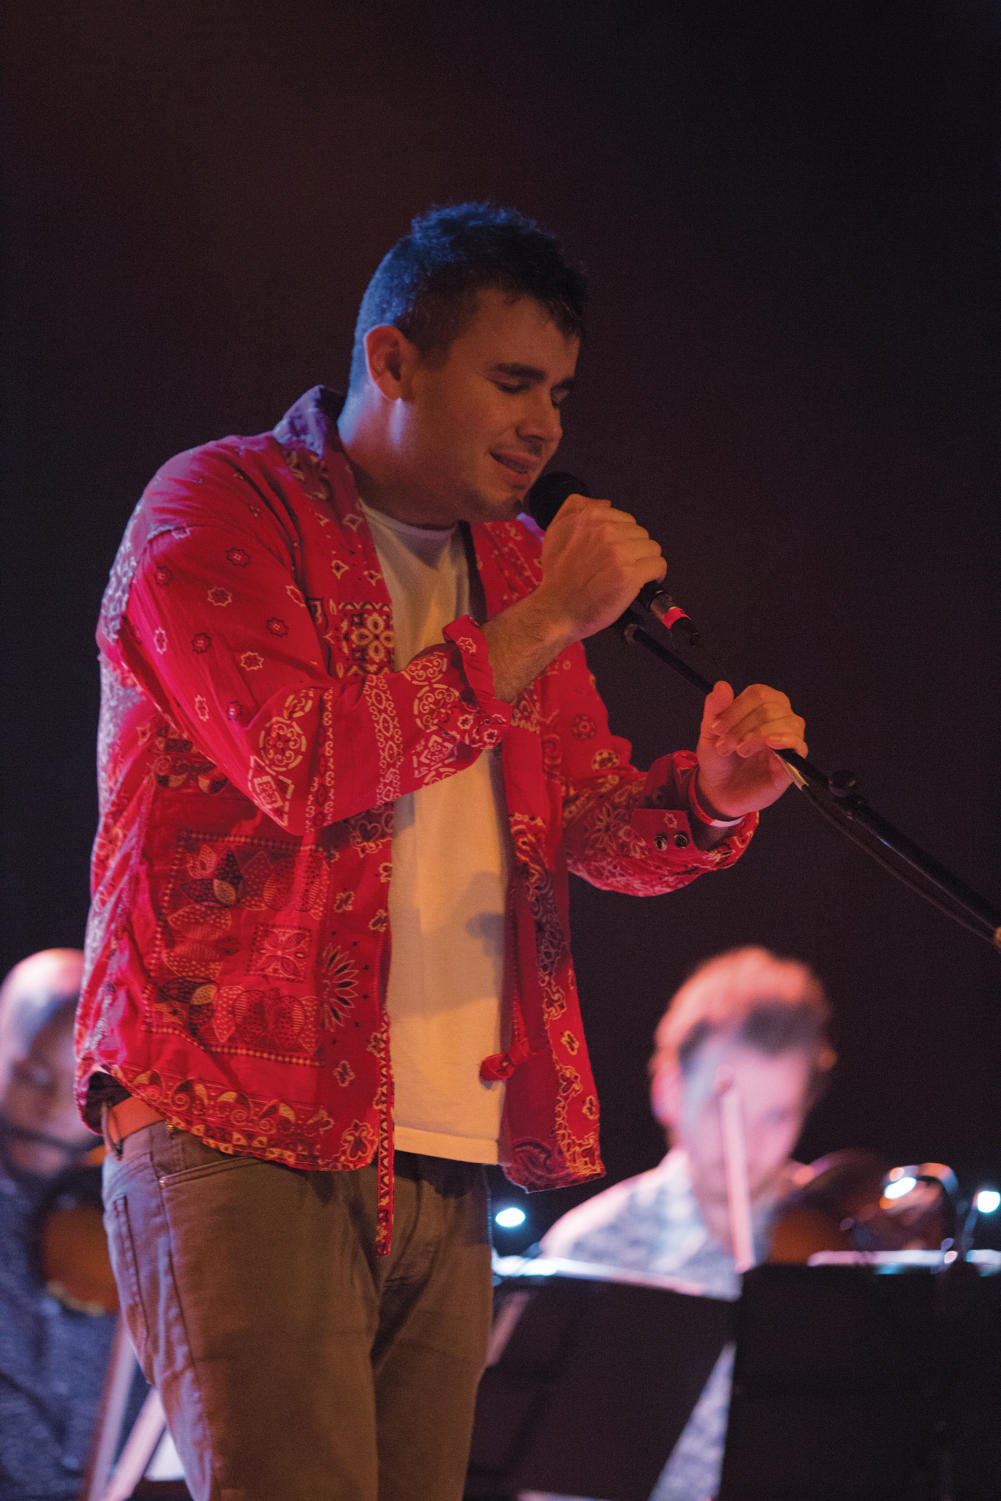 Rostam Batmanjlij, singing along with his group of string players.